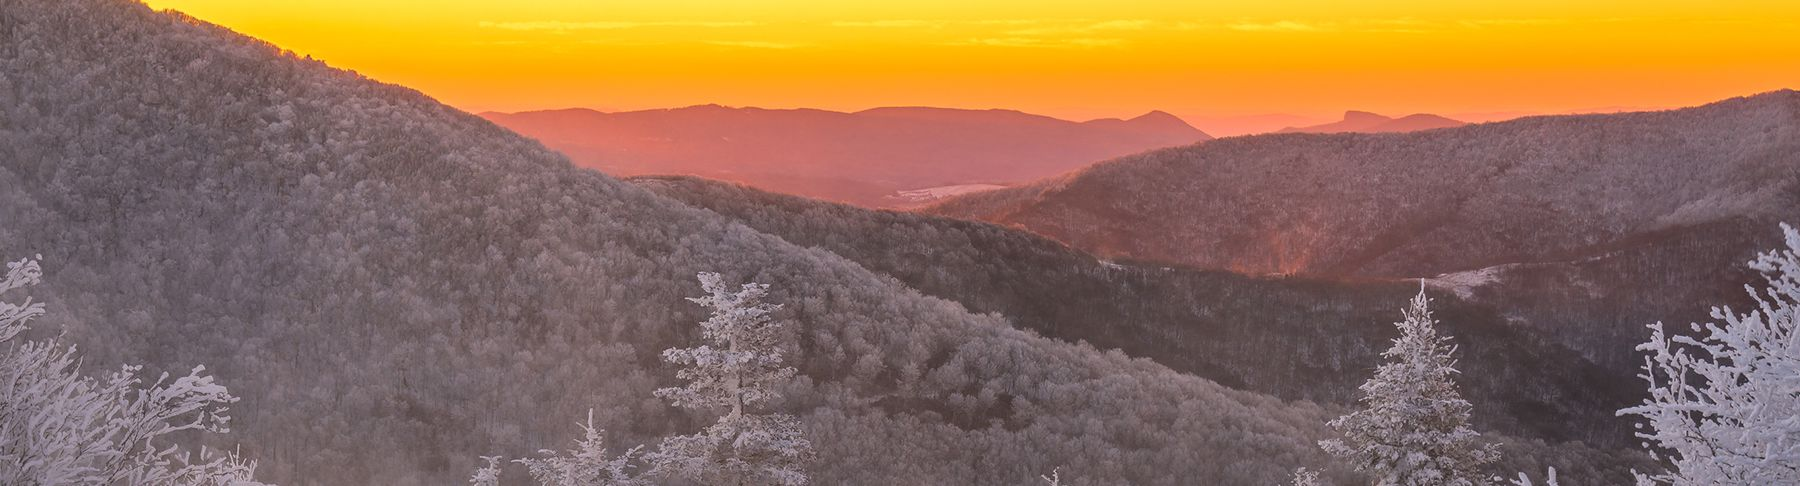 Winter Sunset in the Blue Ridge Mountains